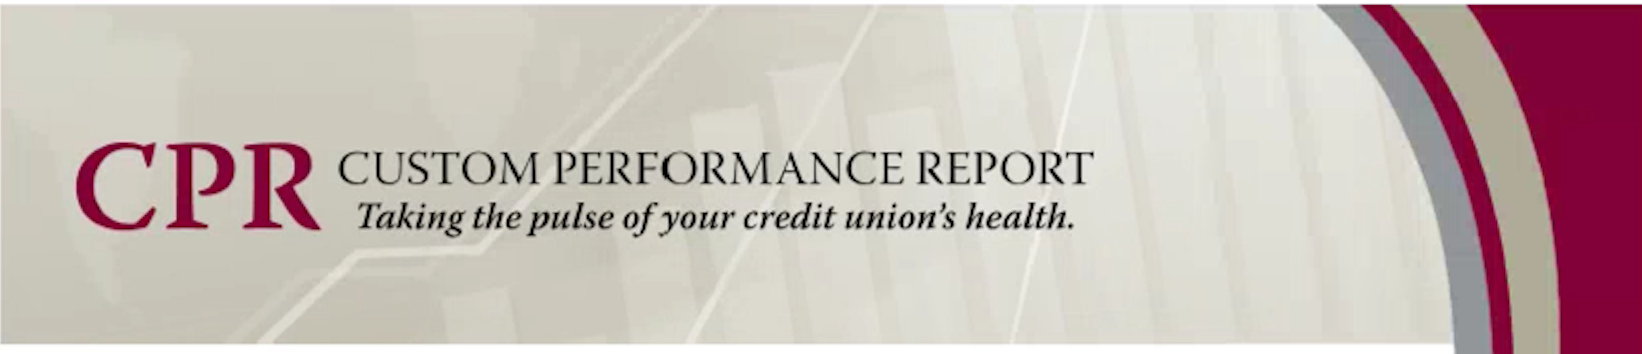 NJCUL Webinars:  Custom Performance Report (CPR) Webinar Series